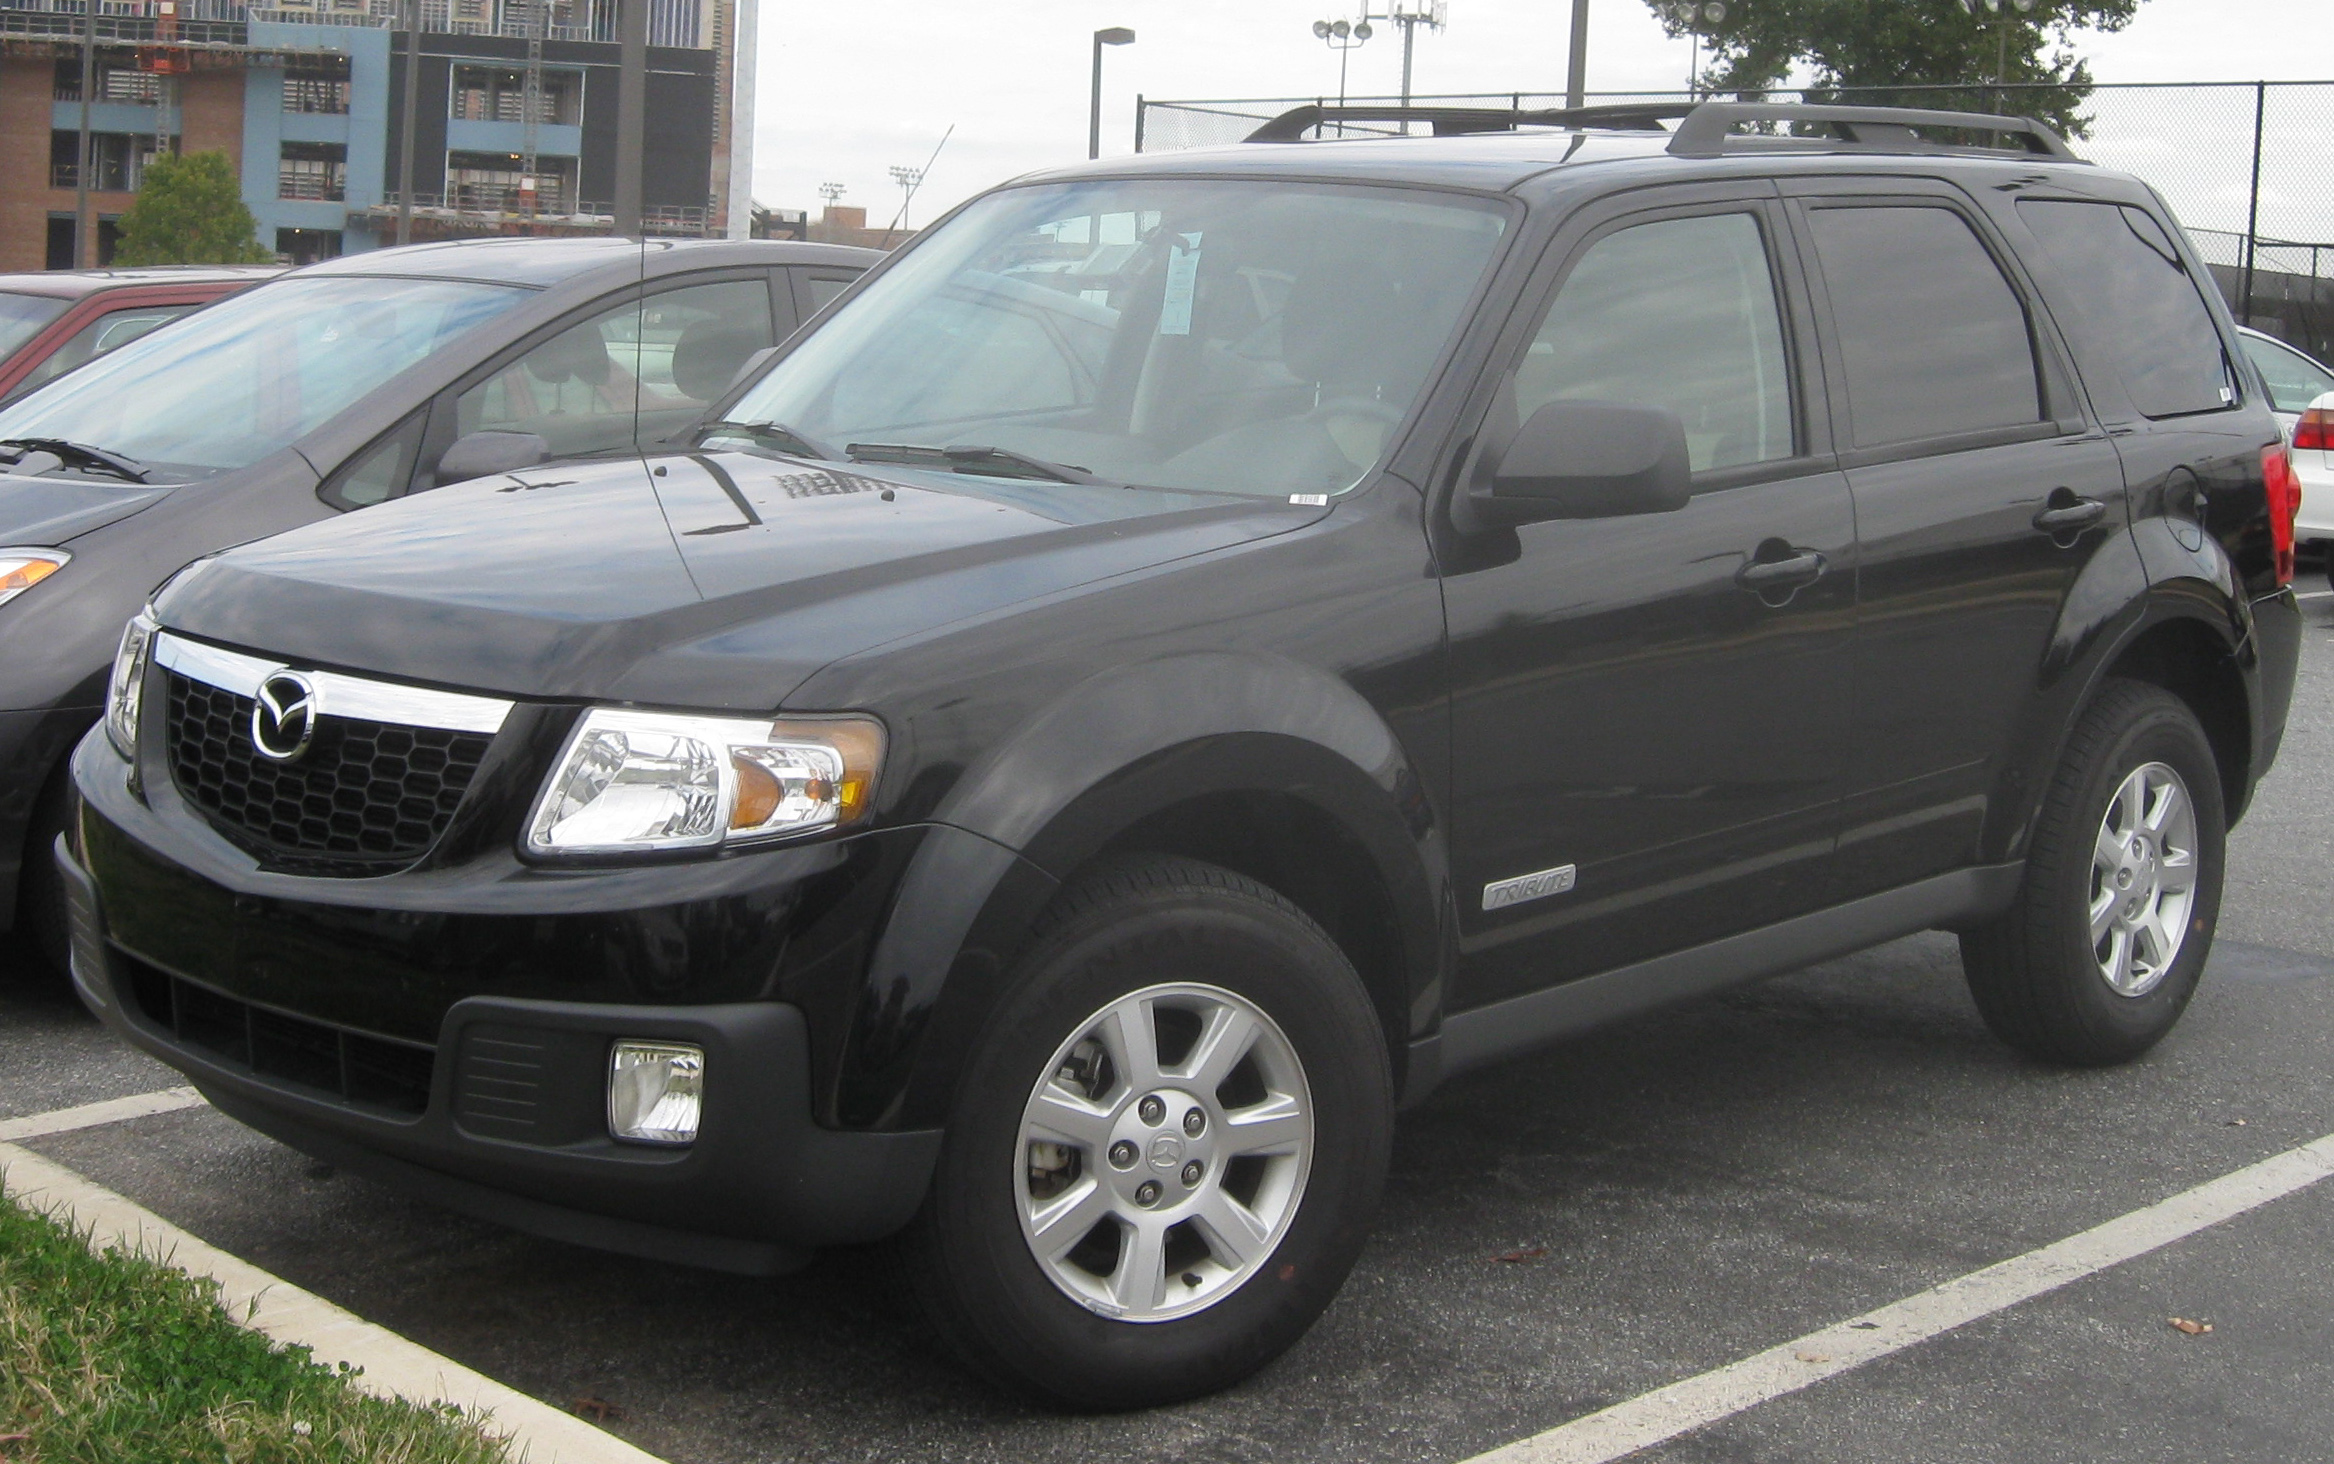 http://upload.wikimedia.org/wikipedia/commons/3/3d/08_Mazda_Tribute.jpg